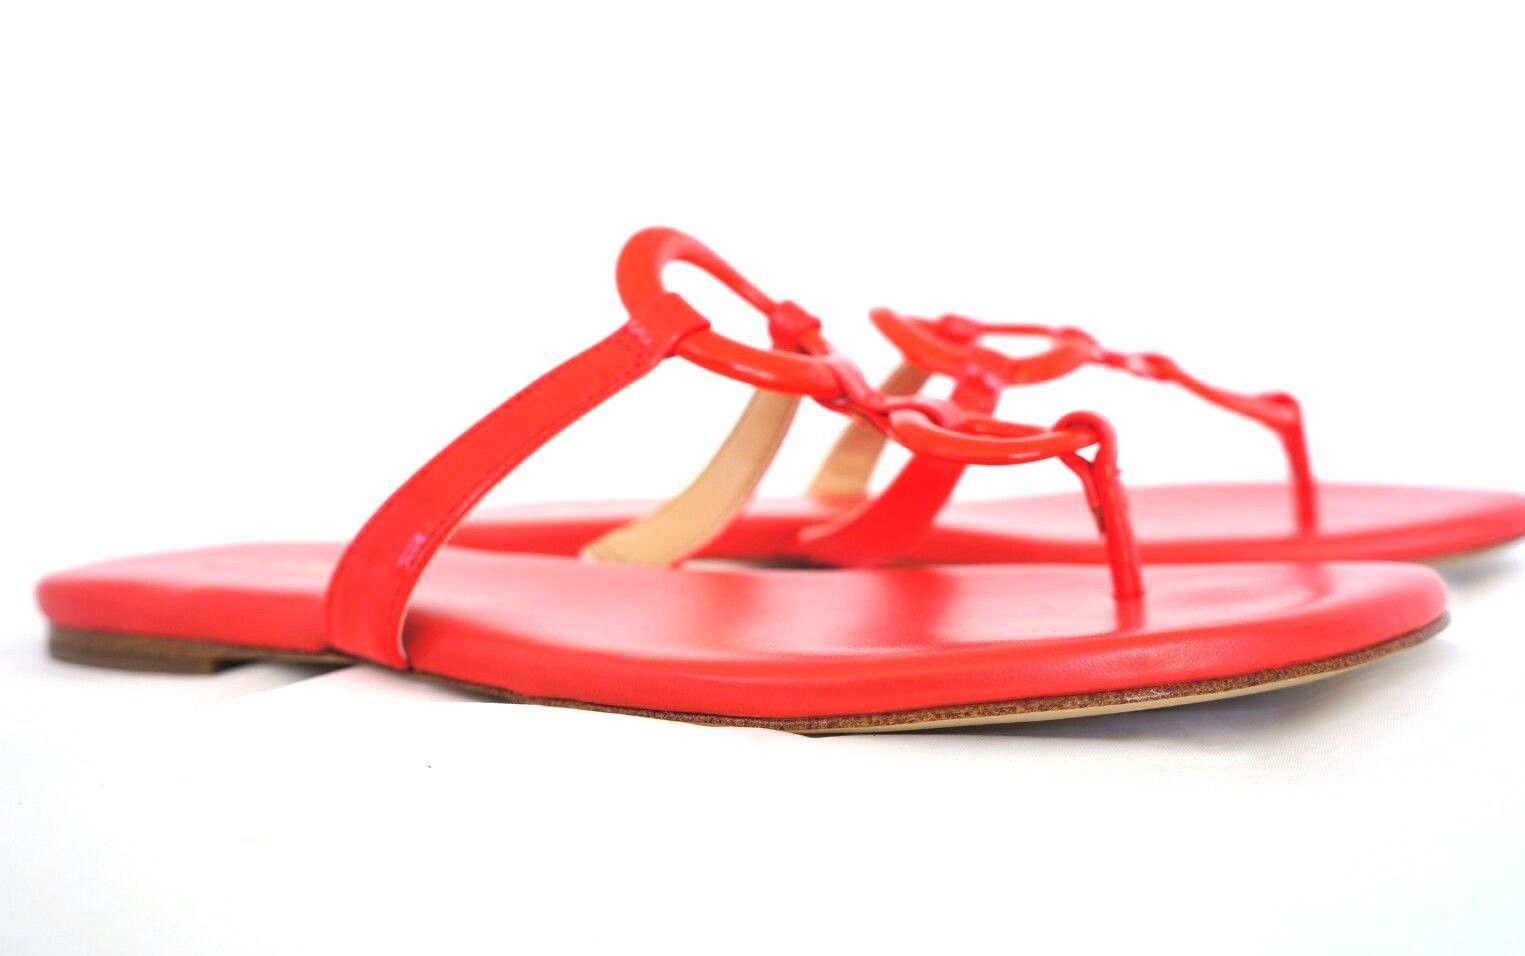 65f4f55935f 57. 57. Previous. Michael Kors MK Claudia Women Footwear Shoes Flat Thong  Sandals Coral Red 5.5